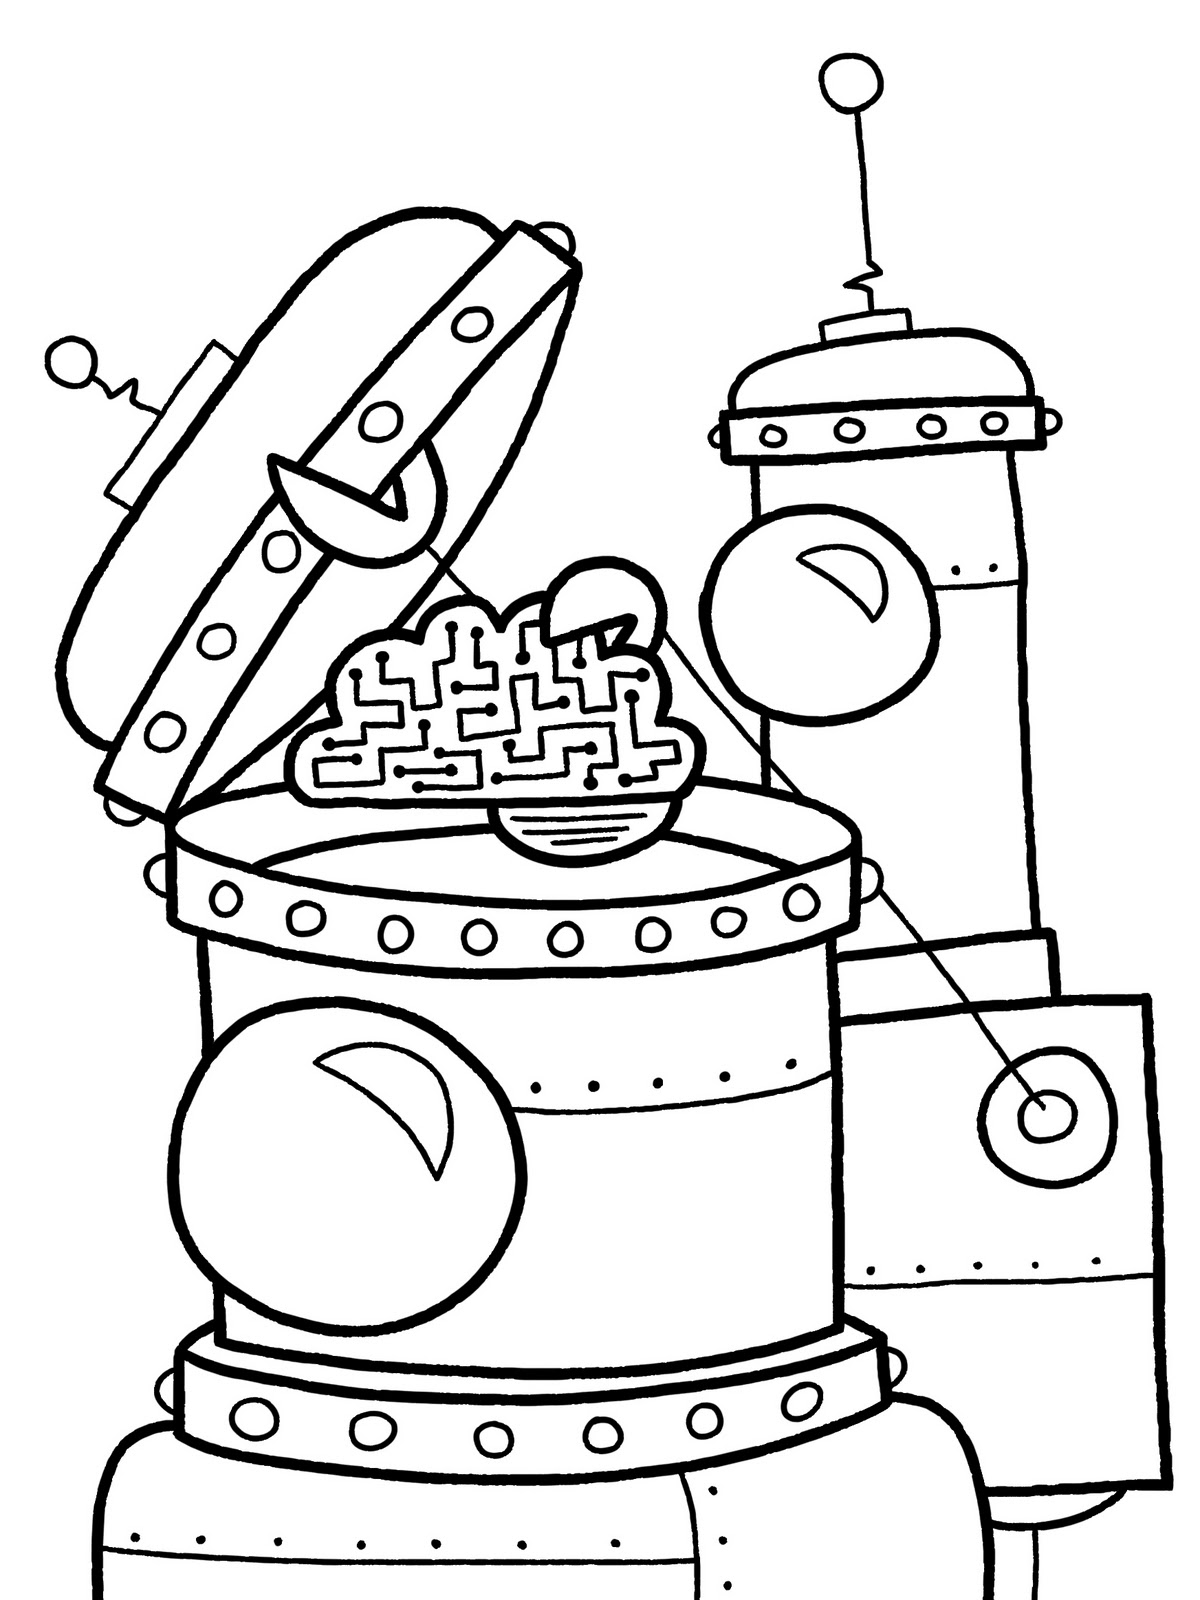 Coloring Page Robot